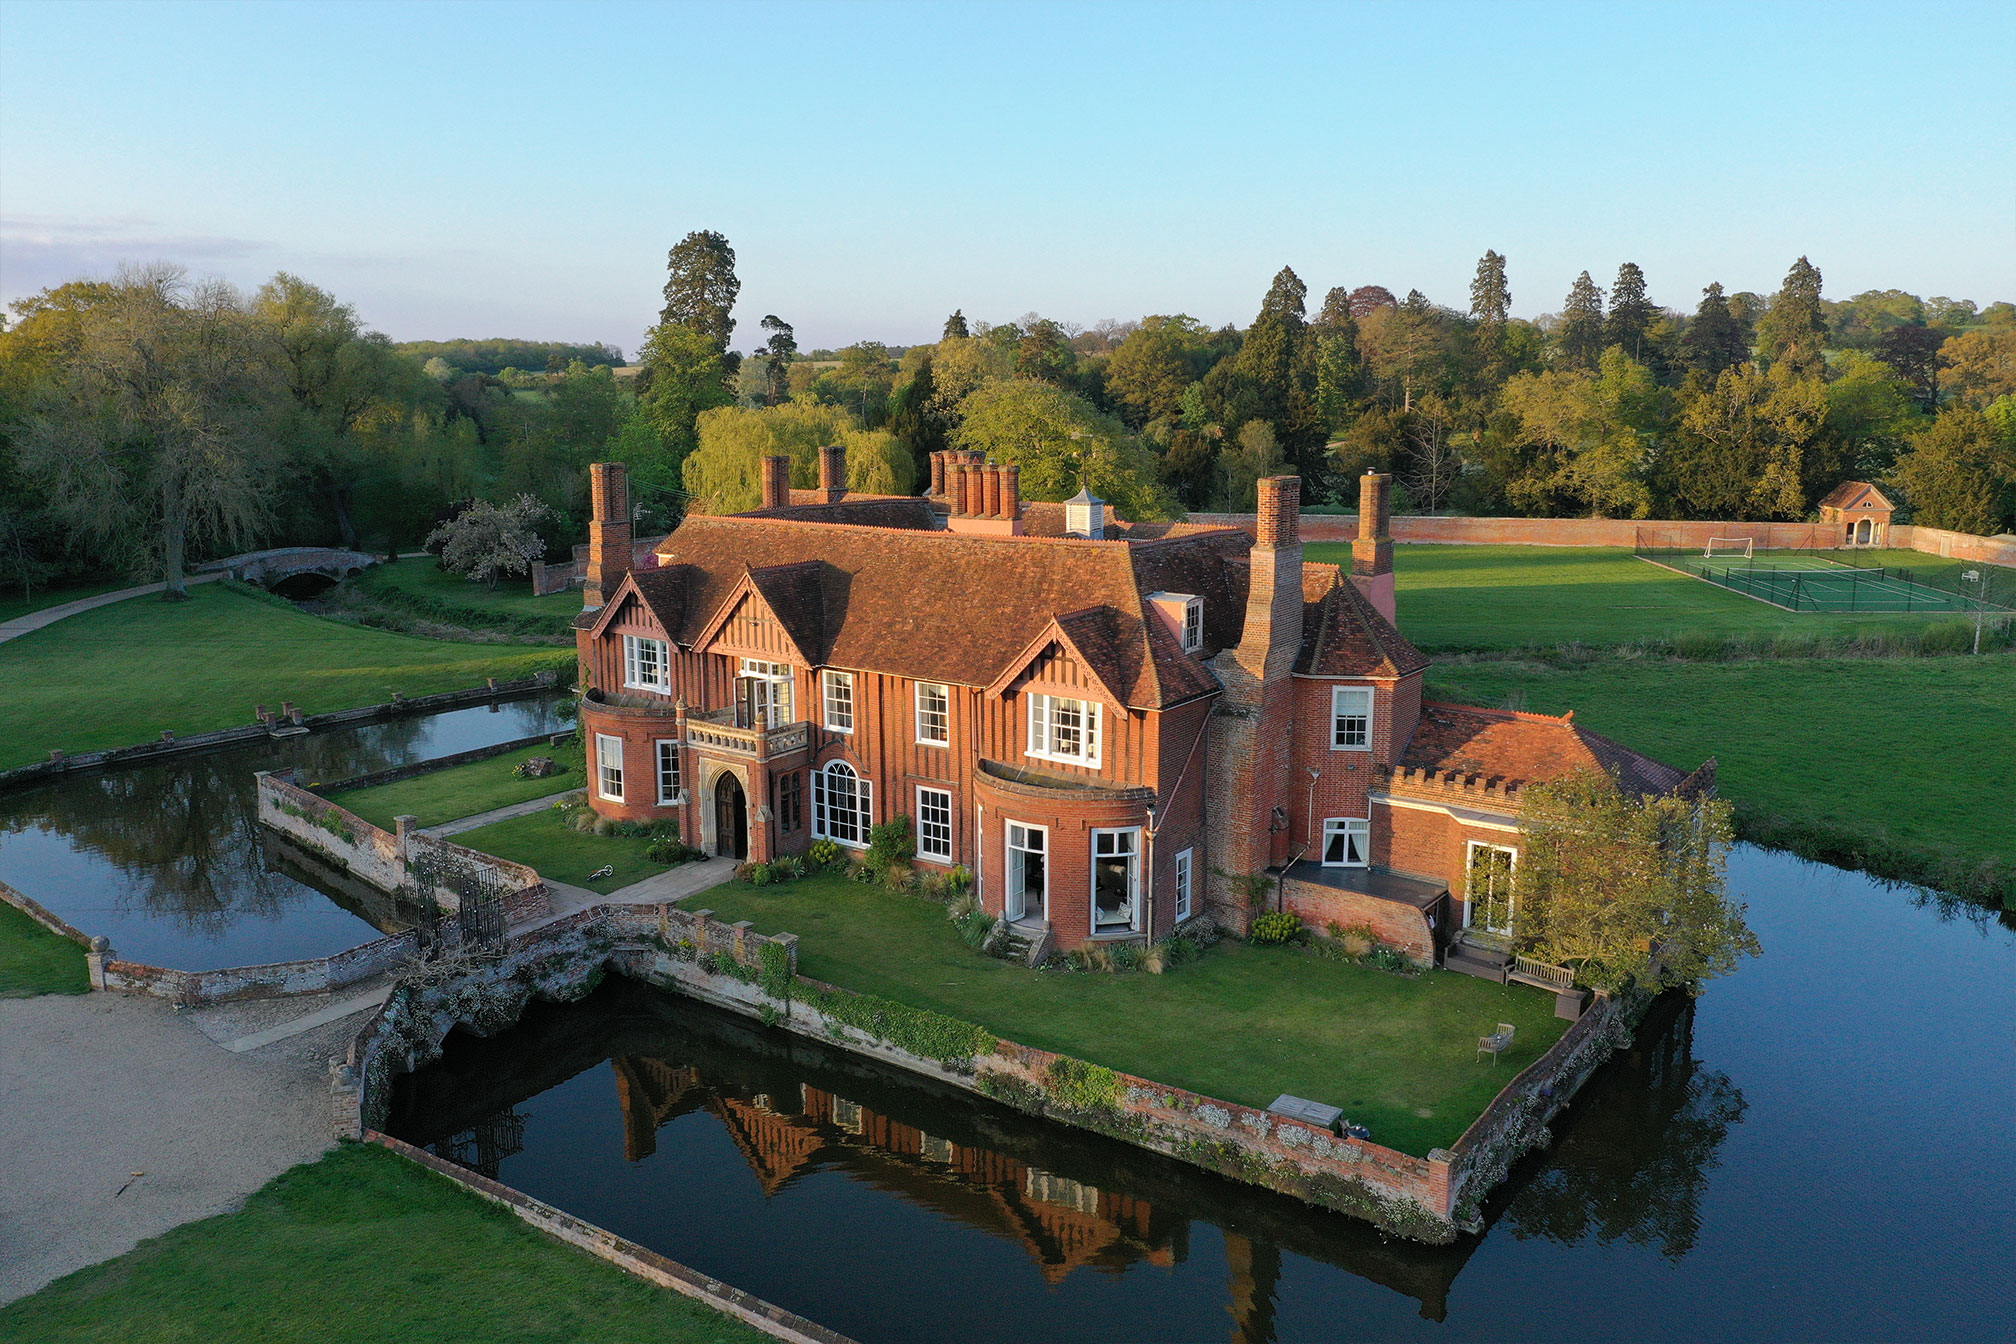 The Presbytery Offers Stunning Views to our Luxury Holiday Cottages in Suffolk